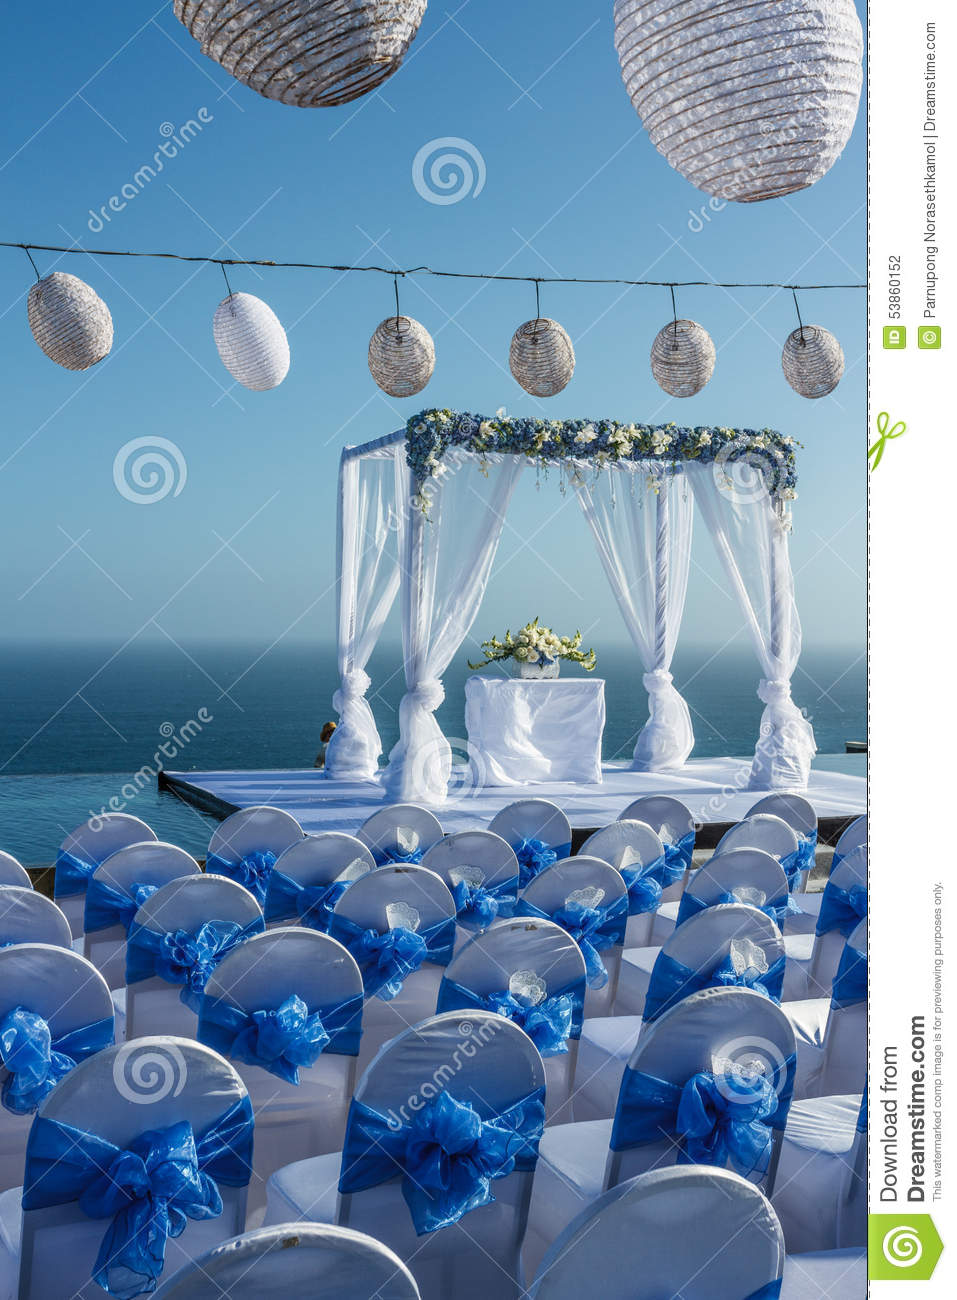 Wedding Party In Blue And White Theme Stock Photo Image Of Party